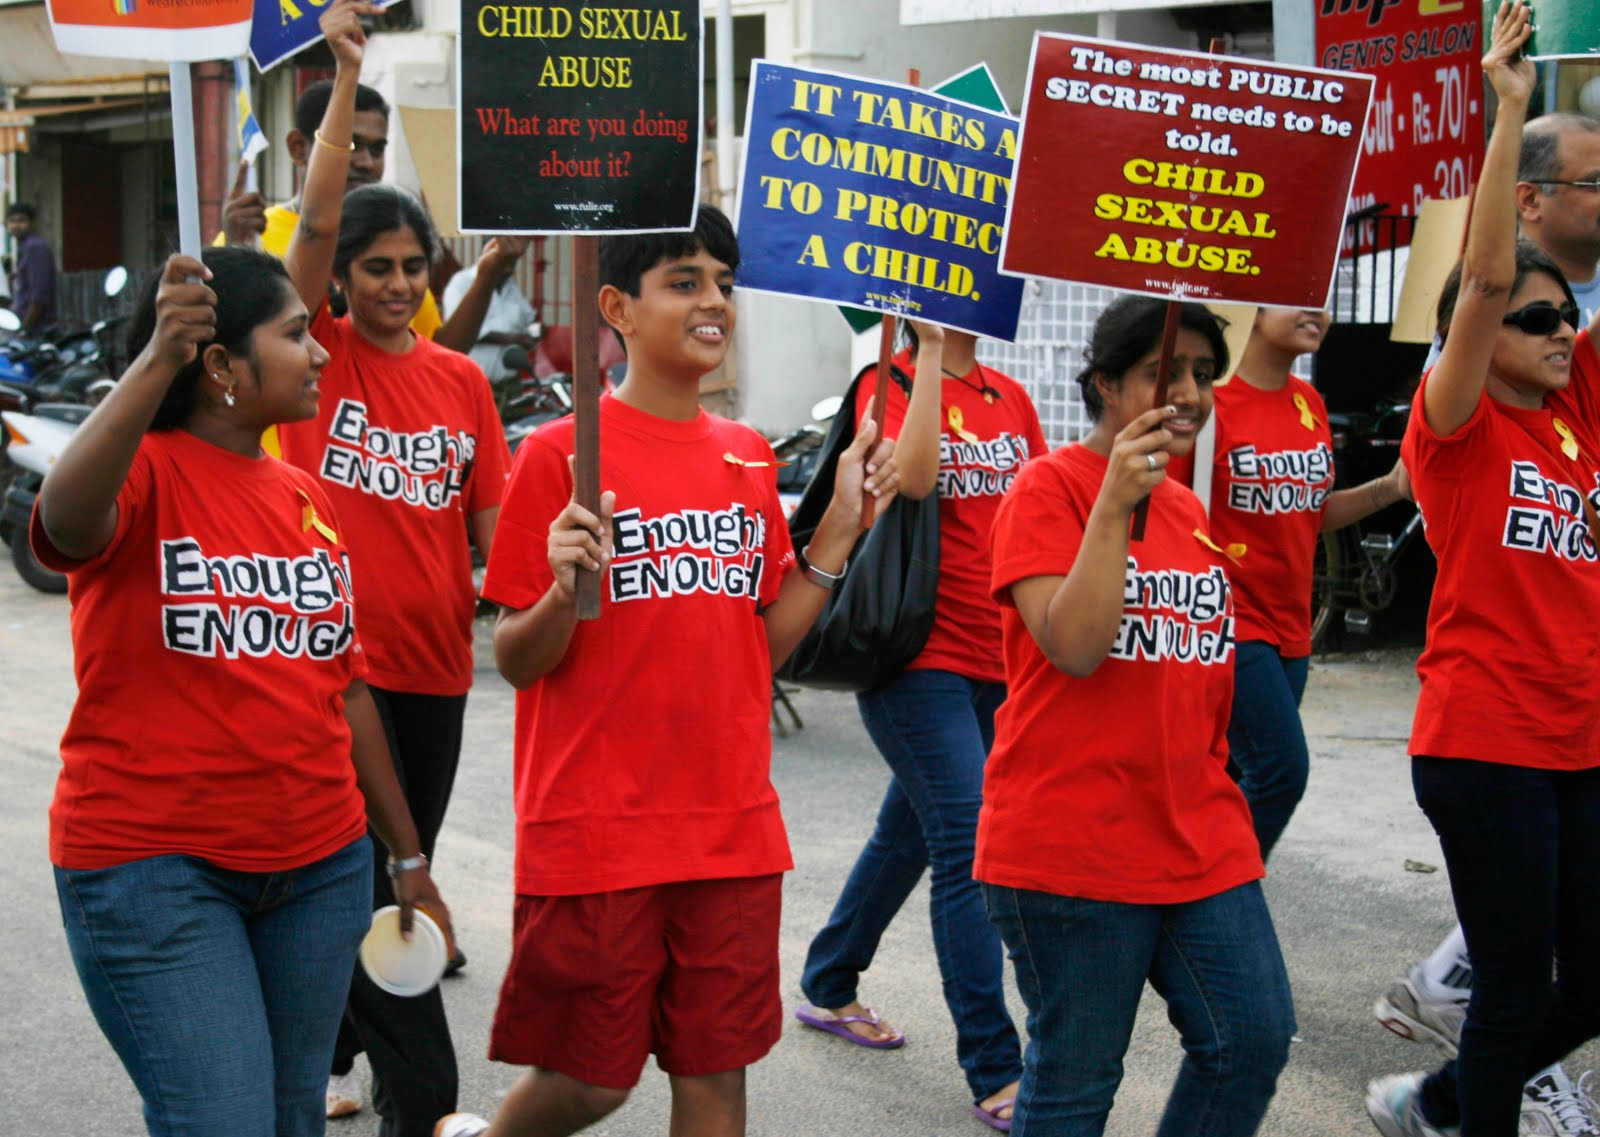 """Youngsters wearing red shirts with """"Enough is enough"""" written in black march on a road, carrying placards reading """"Child sexual abuse - what are you doing about it?""""; """"The most public secret needs to be told""""; and """"it takes a community to protect a child."""""""